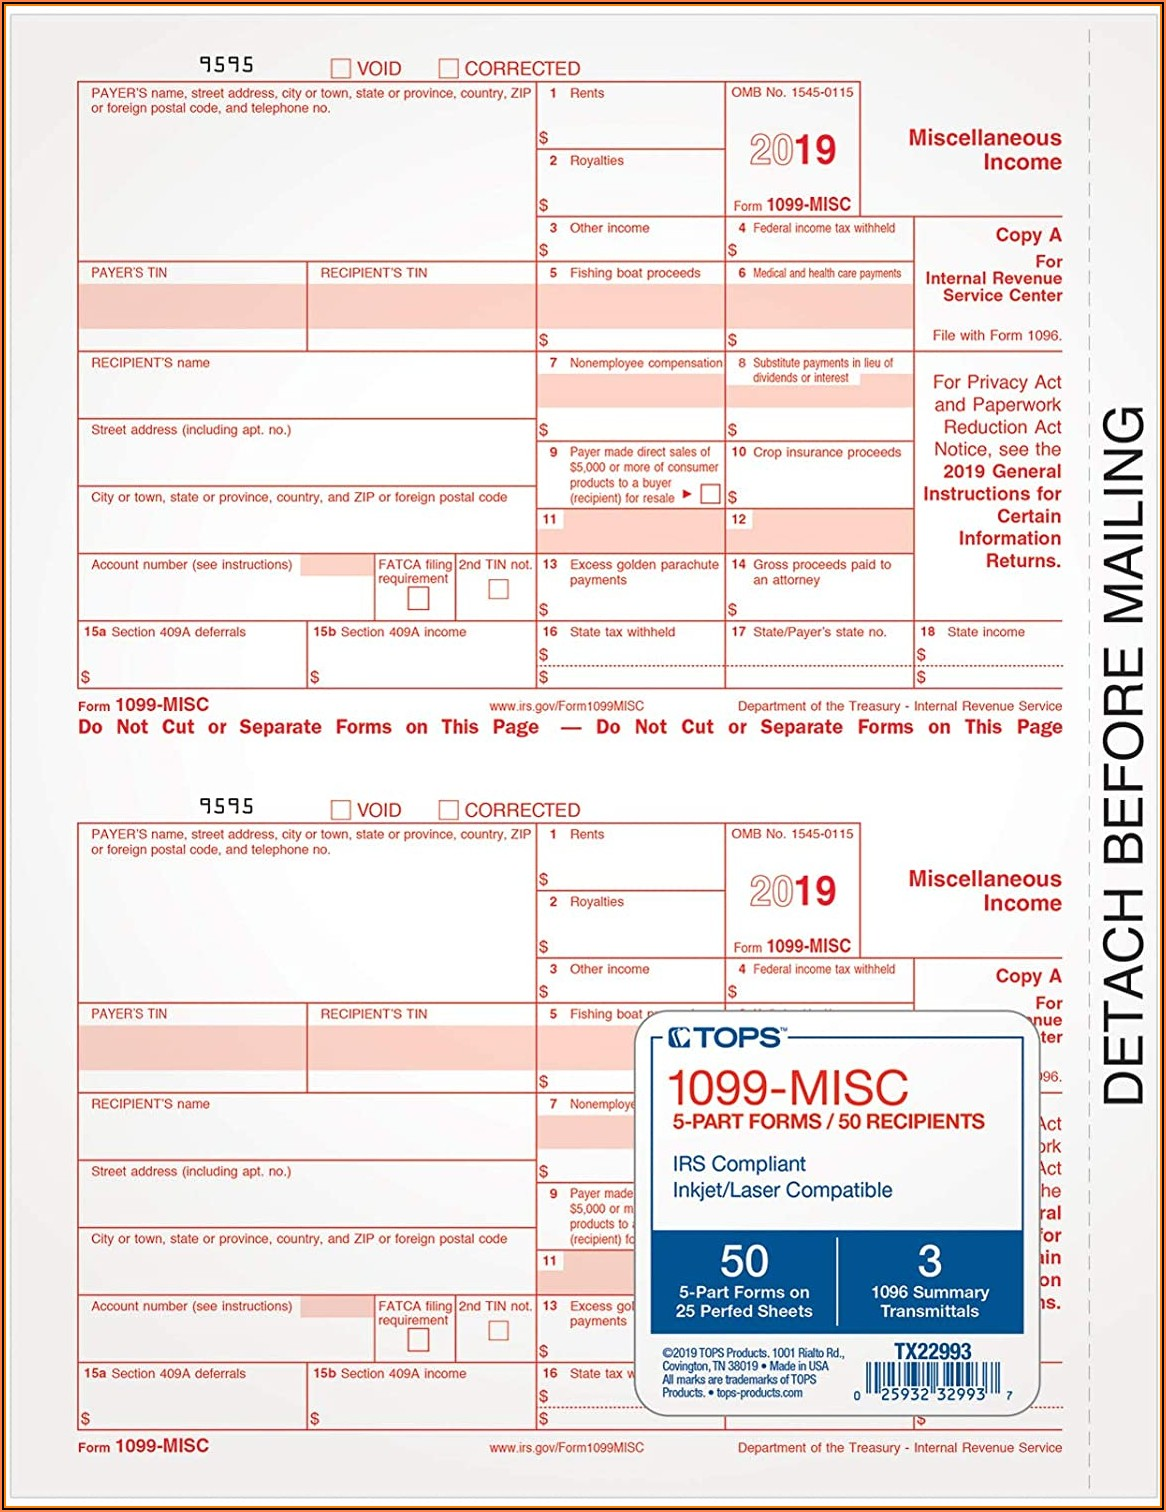 Where Can I Buy 1099 Misc Forms